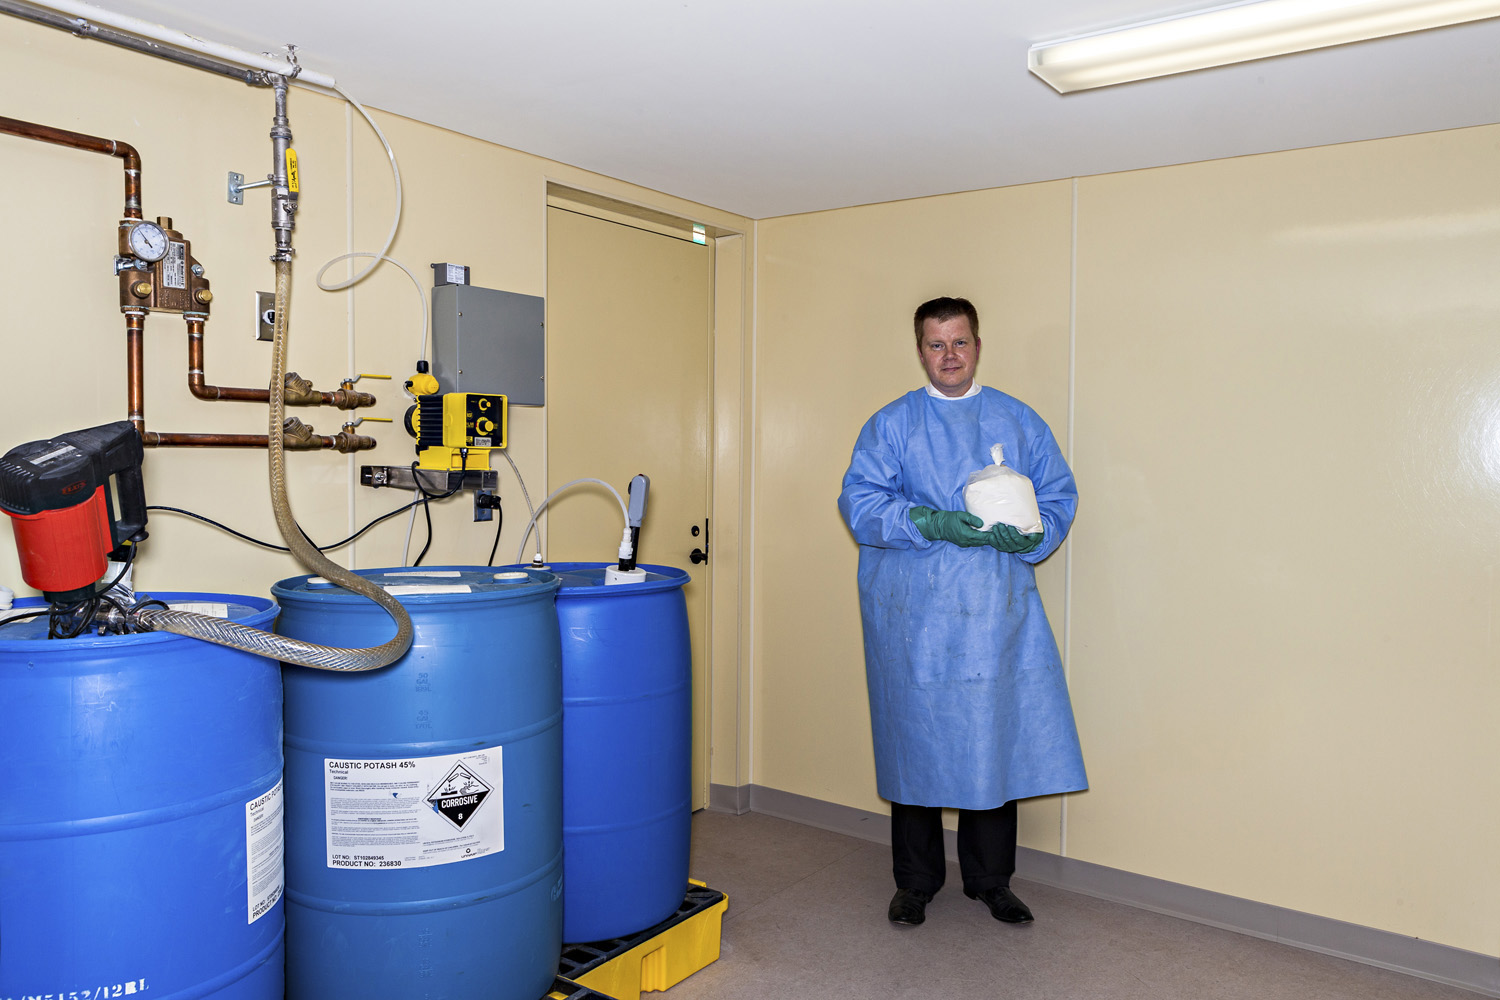 Jason Bradshaw poses next to barrels of chemicals used in the green cremation process, while holding a bag of human remains that have undergone this process.